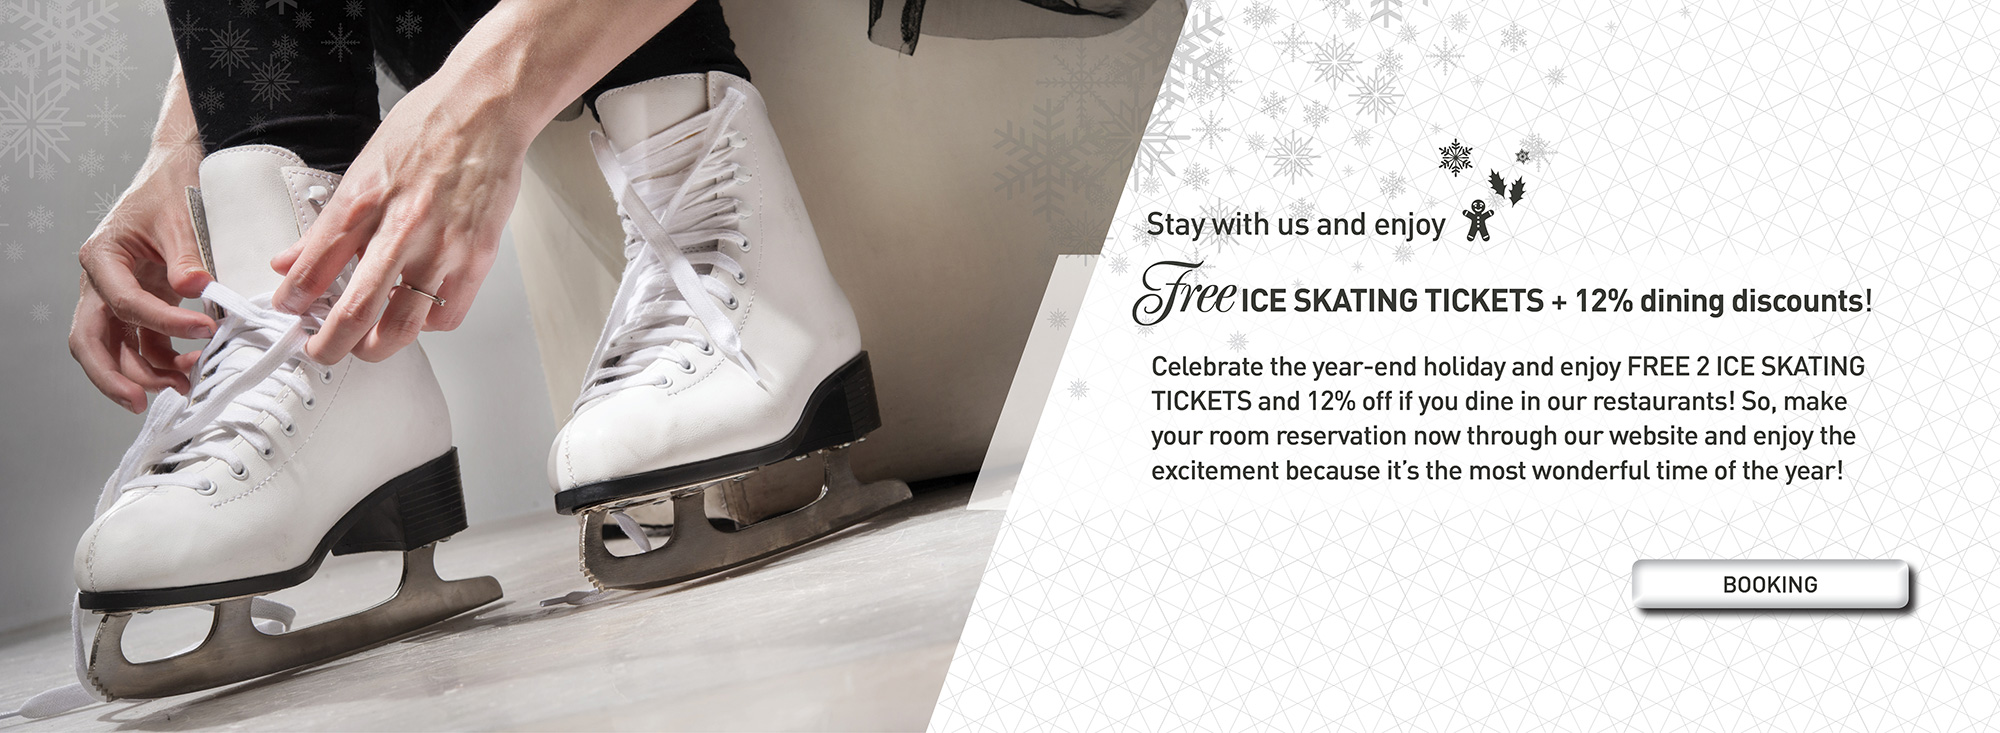 FREE 2 ICE SKATING TICKETS and 12% off if you dine in our restaurants!